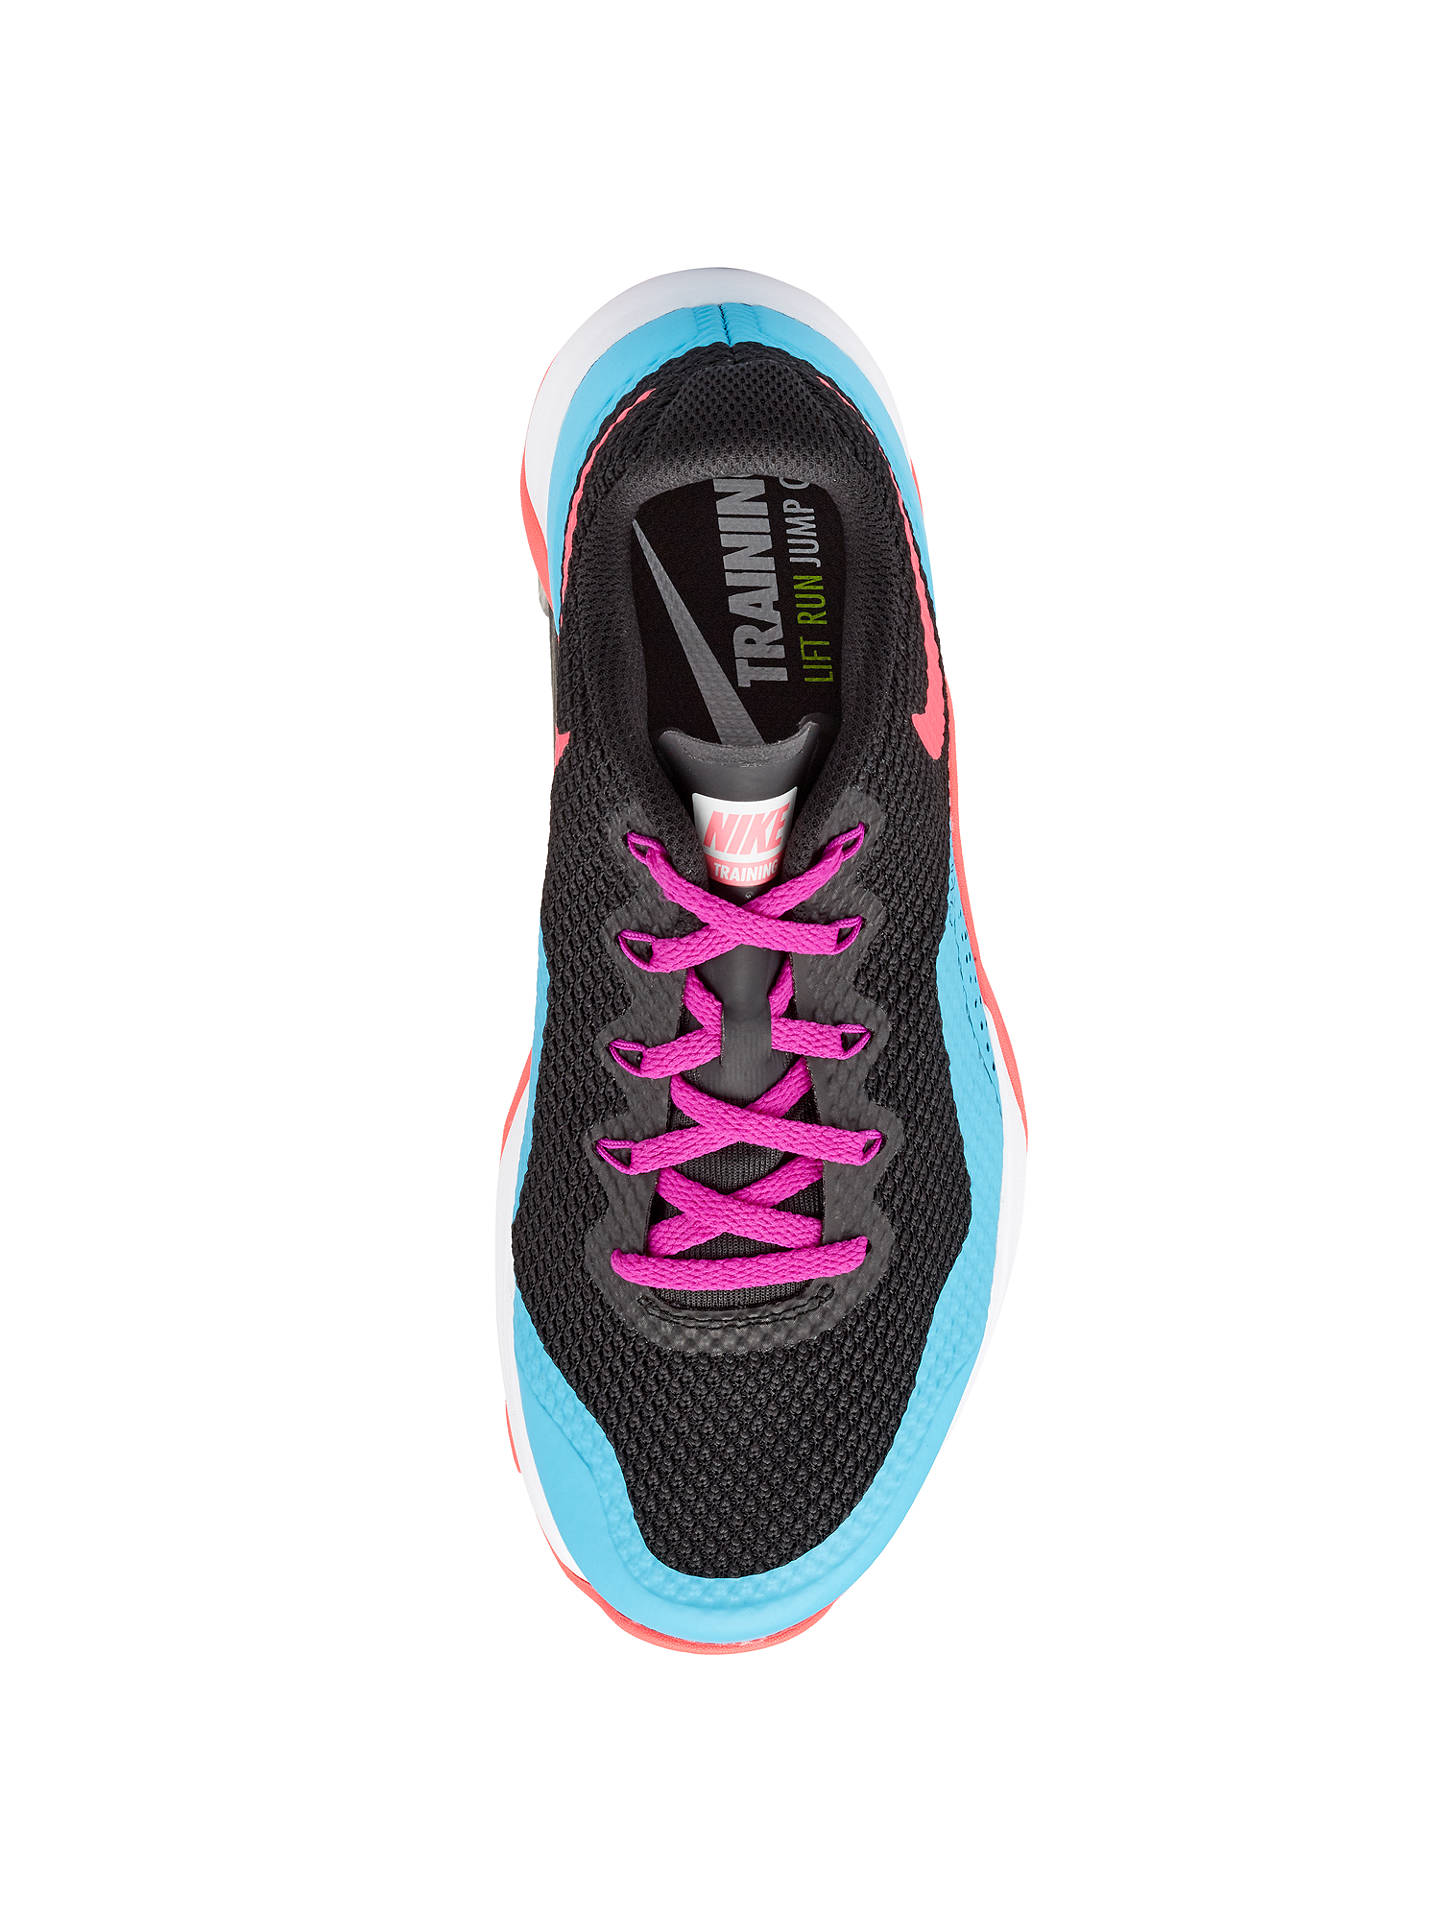 107bdbe40eeae Nike Metcon Repper DSX Women's Cross Trainers, Black/Pink at John ...